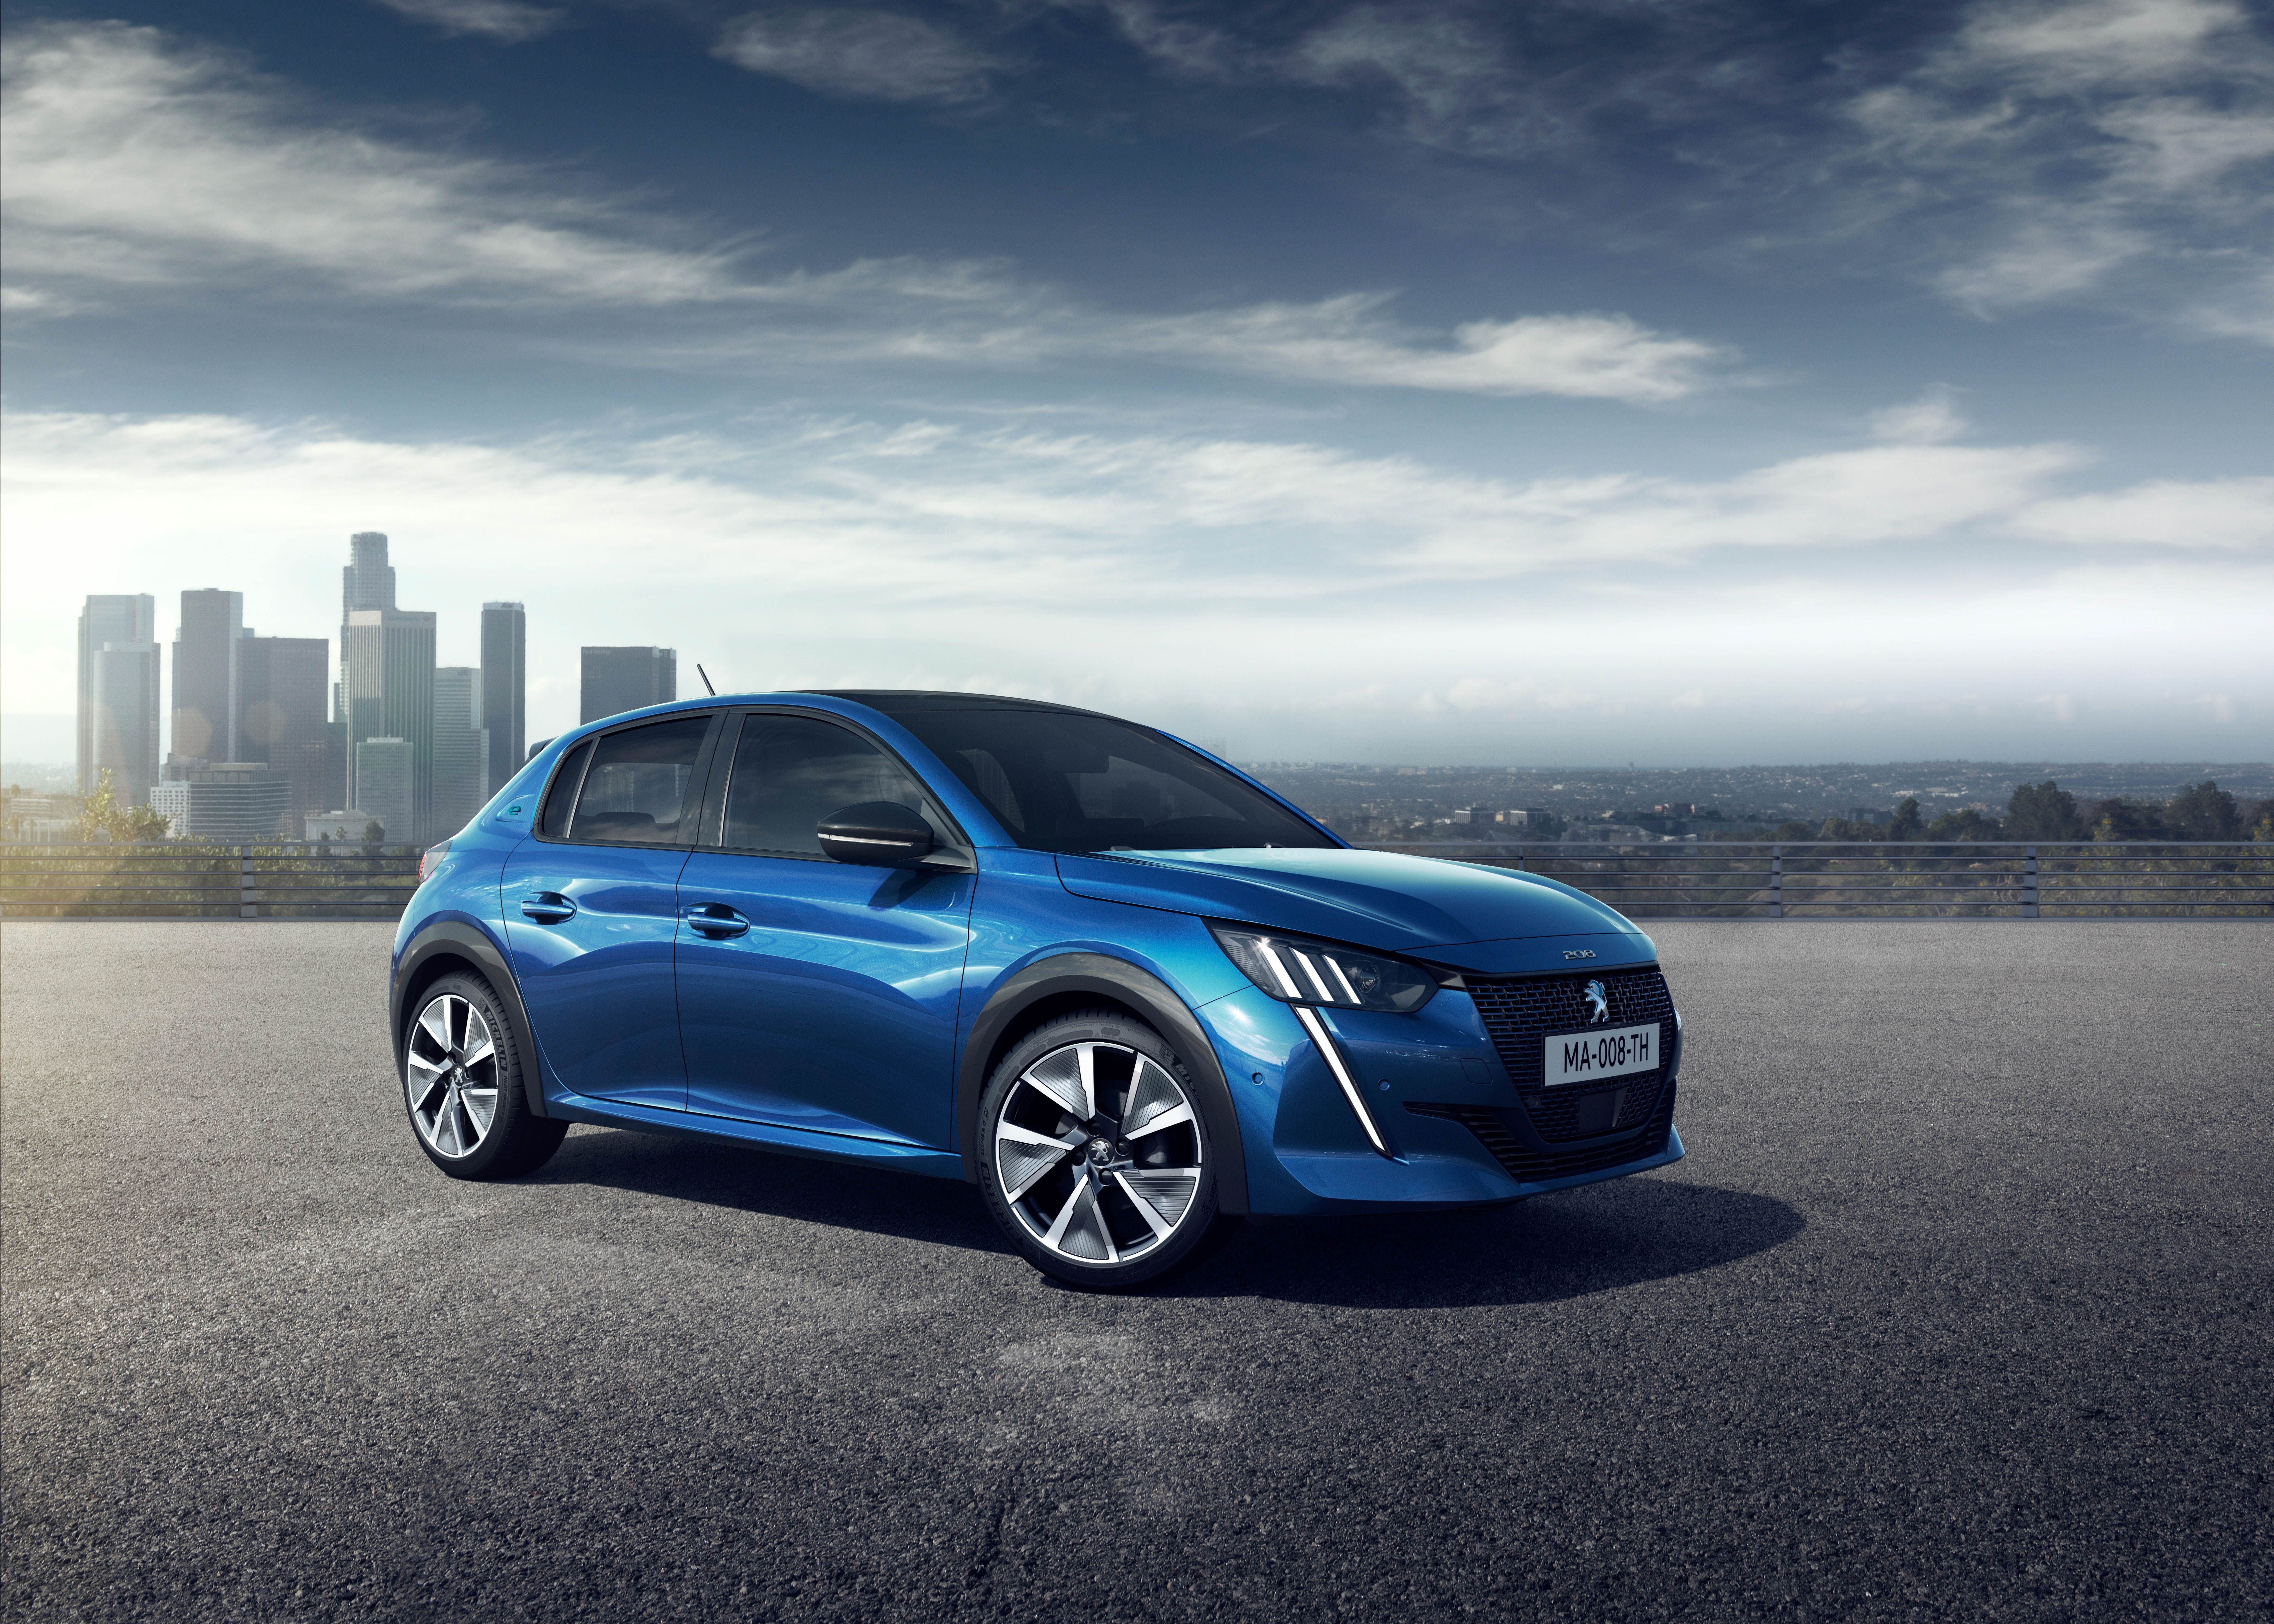 Peugeot Lineup Of French Cars And Suvs Returning To The U S